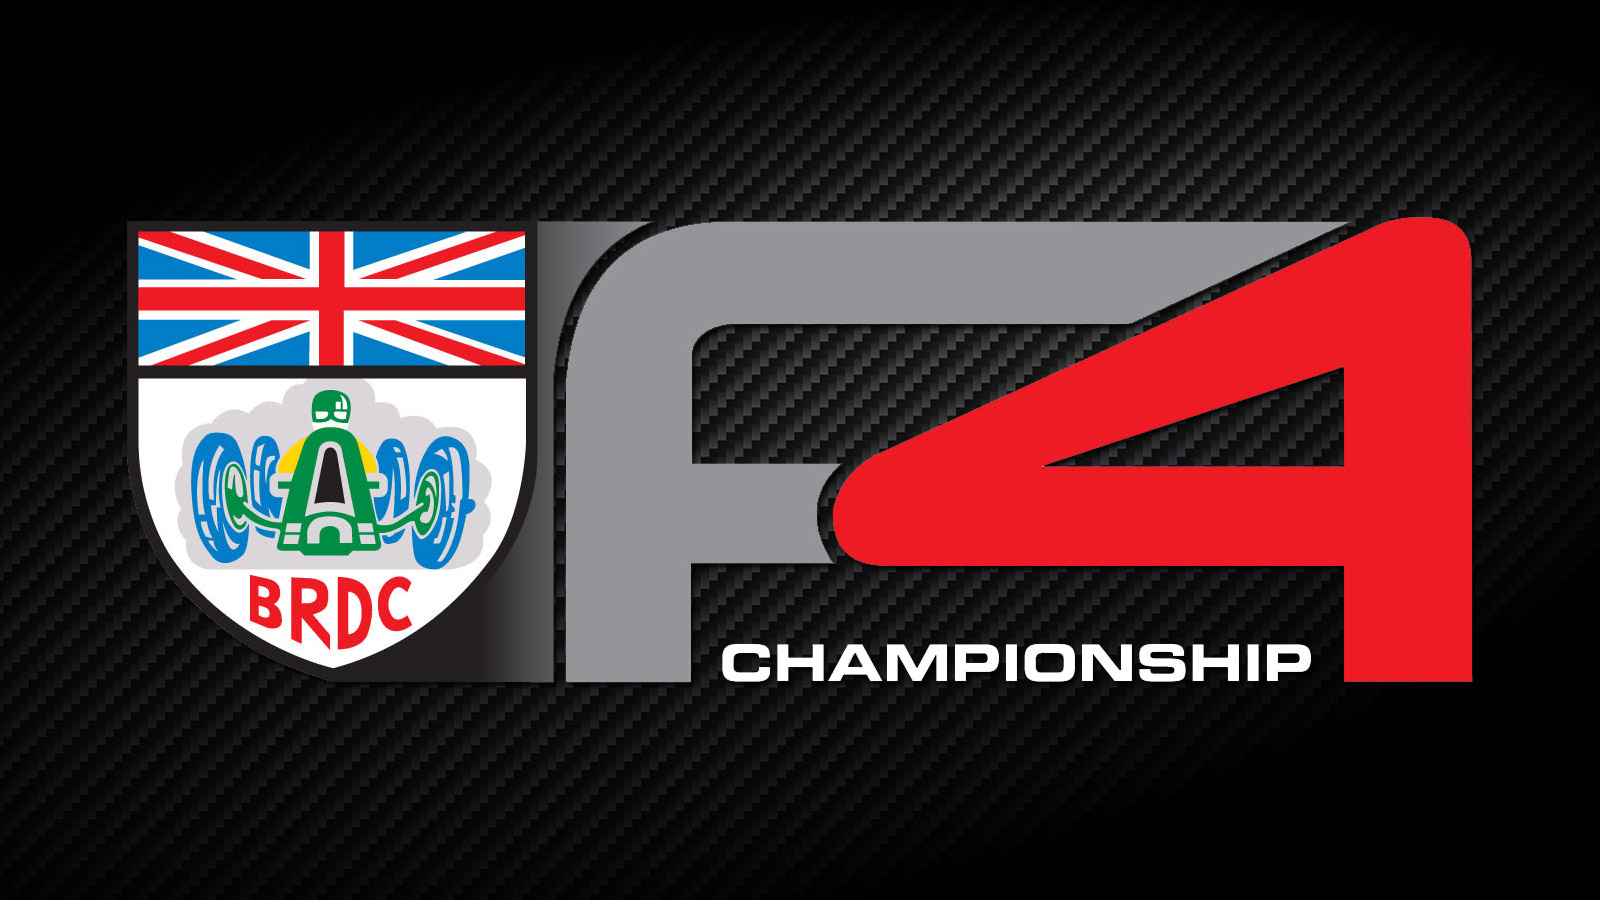 The 2016 BRDC F4 calendar announced with continuing British GT partnership and visit to legendary Spa-Francorchamps.